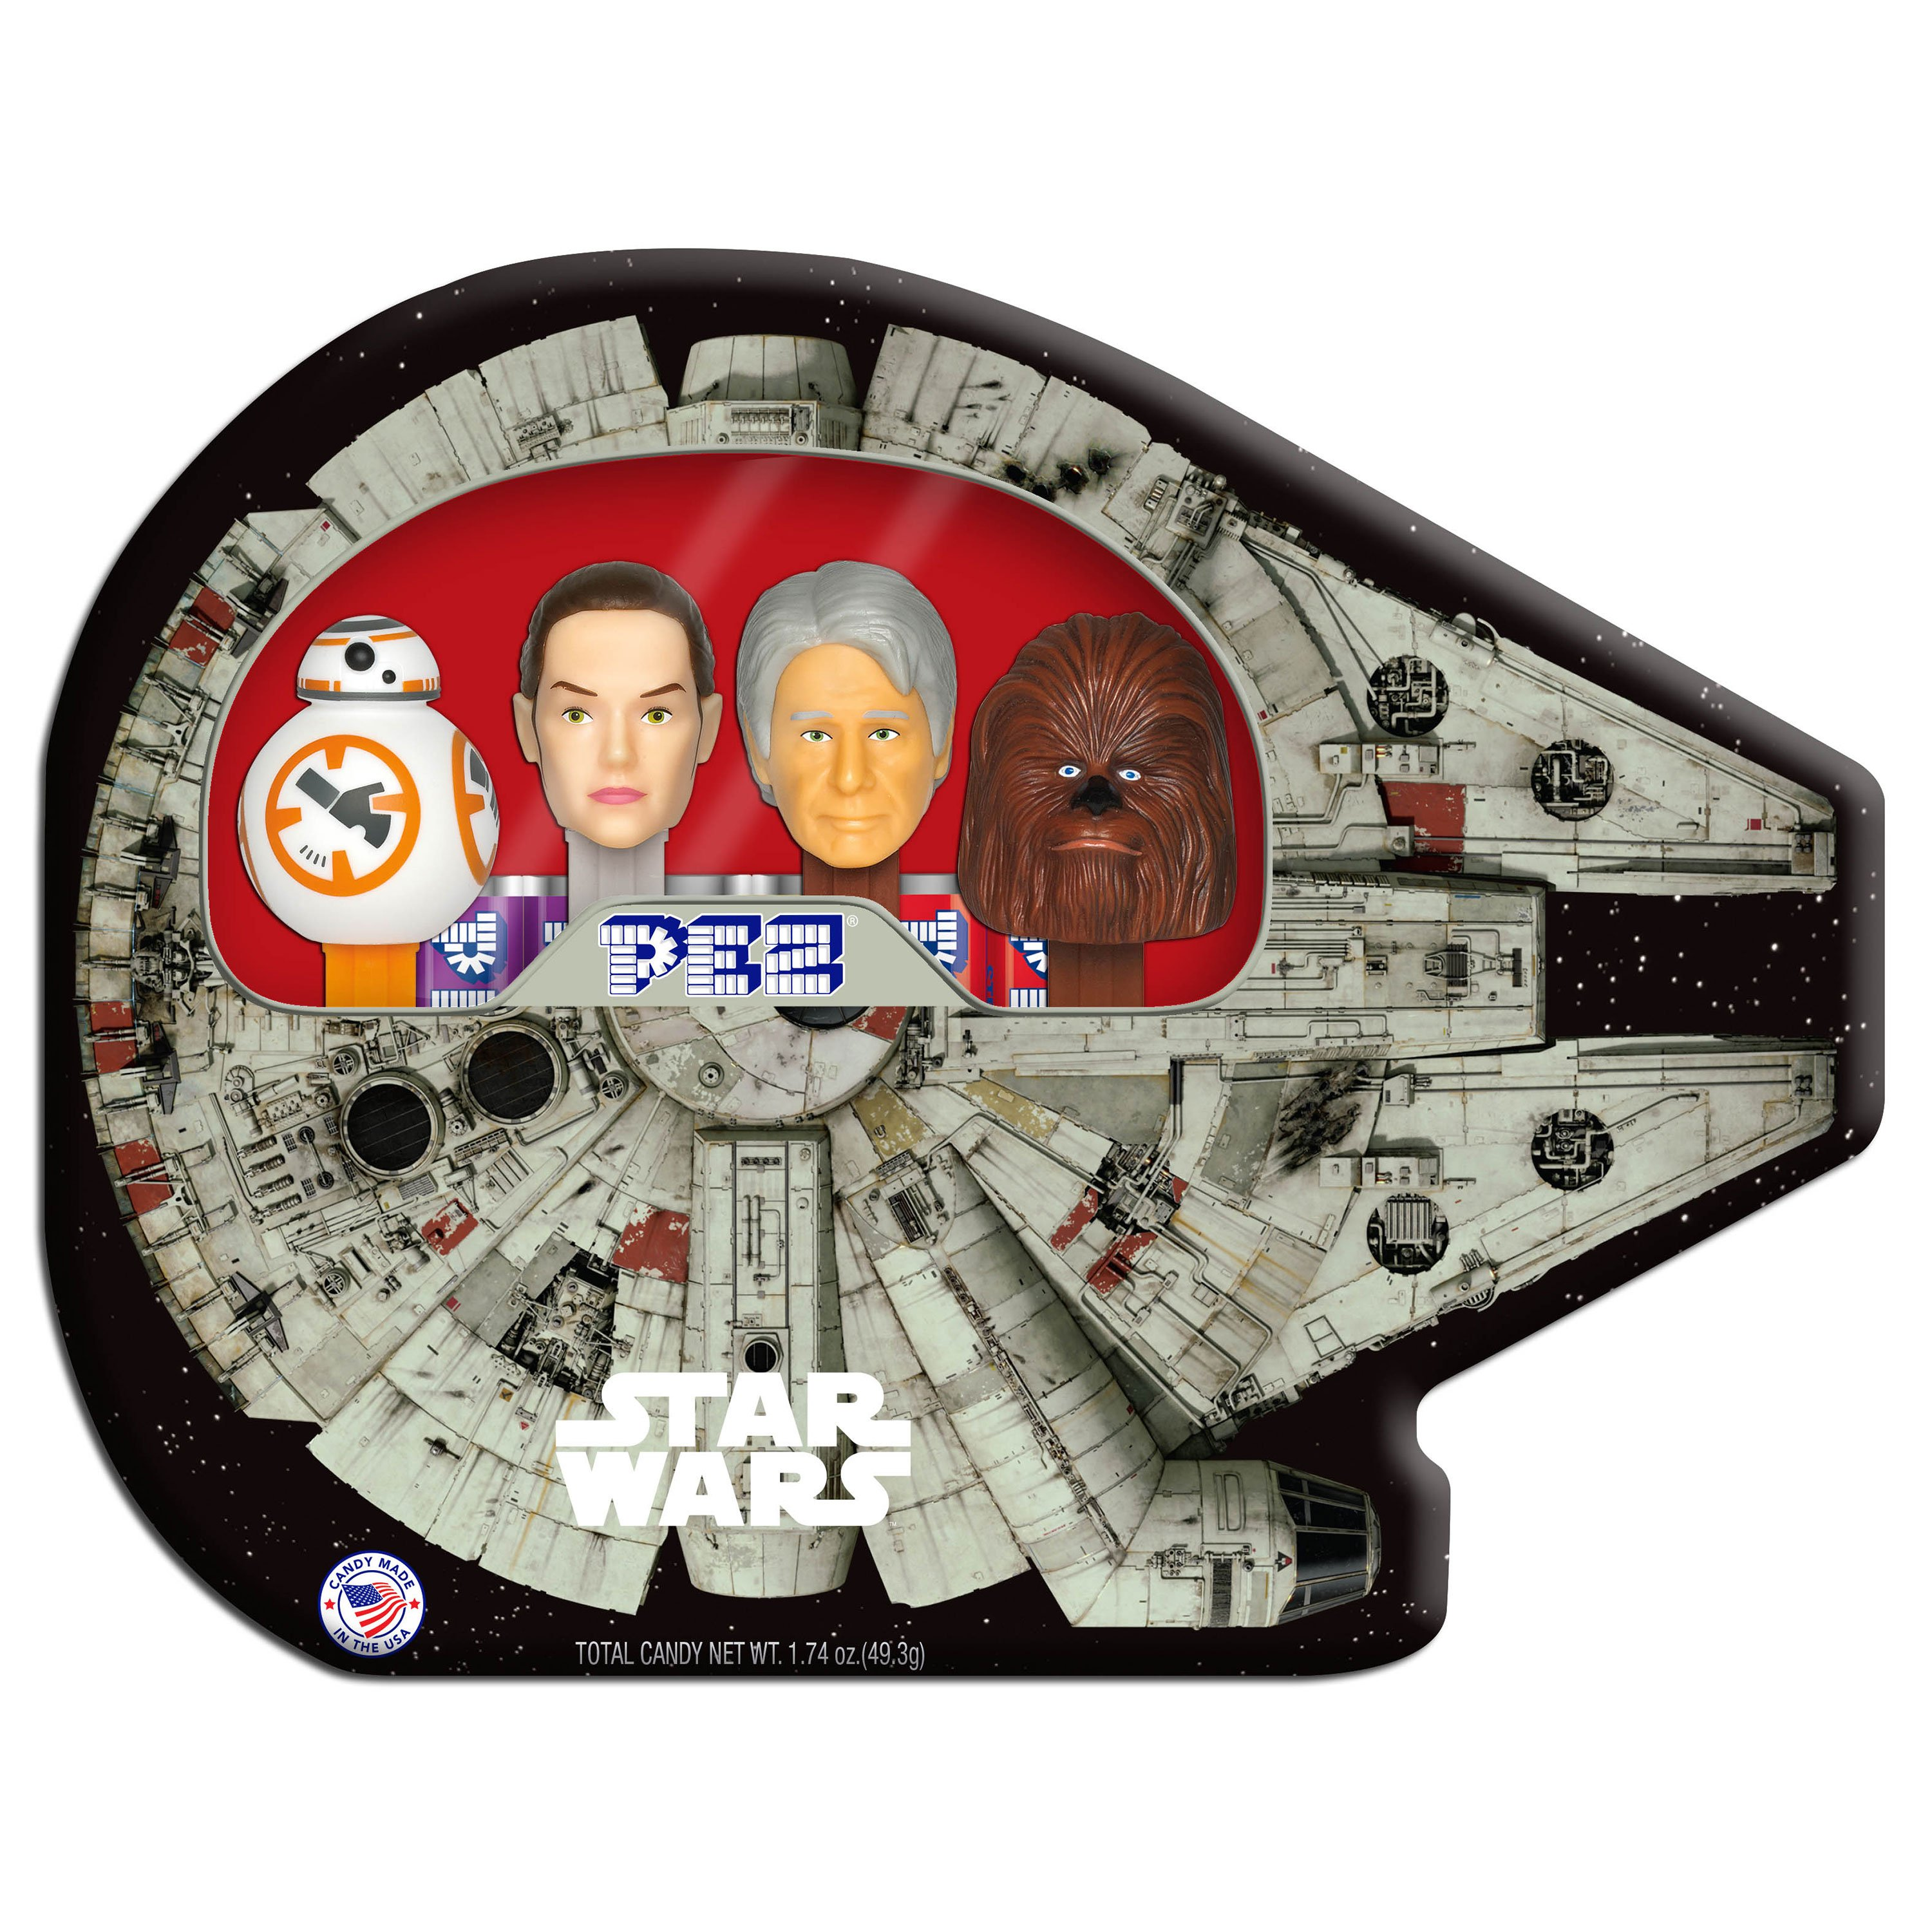 PEZ Candy Star Wars Millennium Falcon Gift Tin with 4 Candy Dispensers + 6 Rolls of Candy